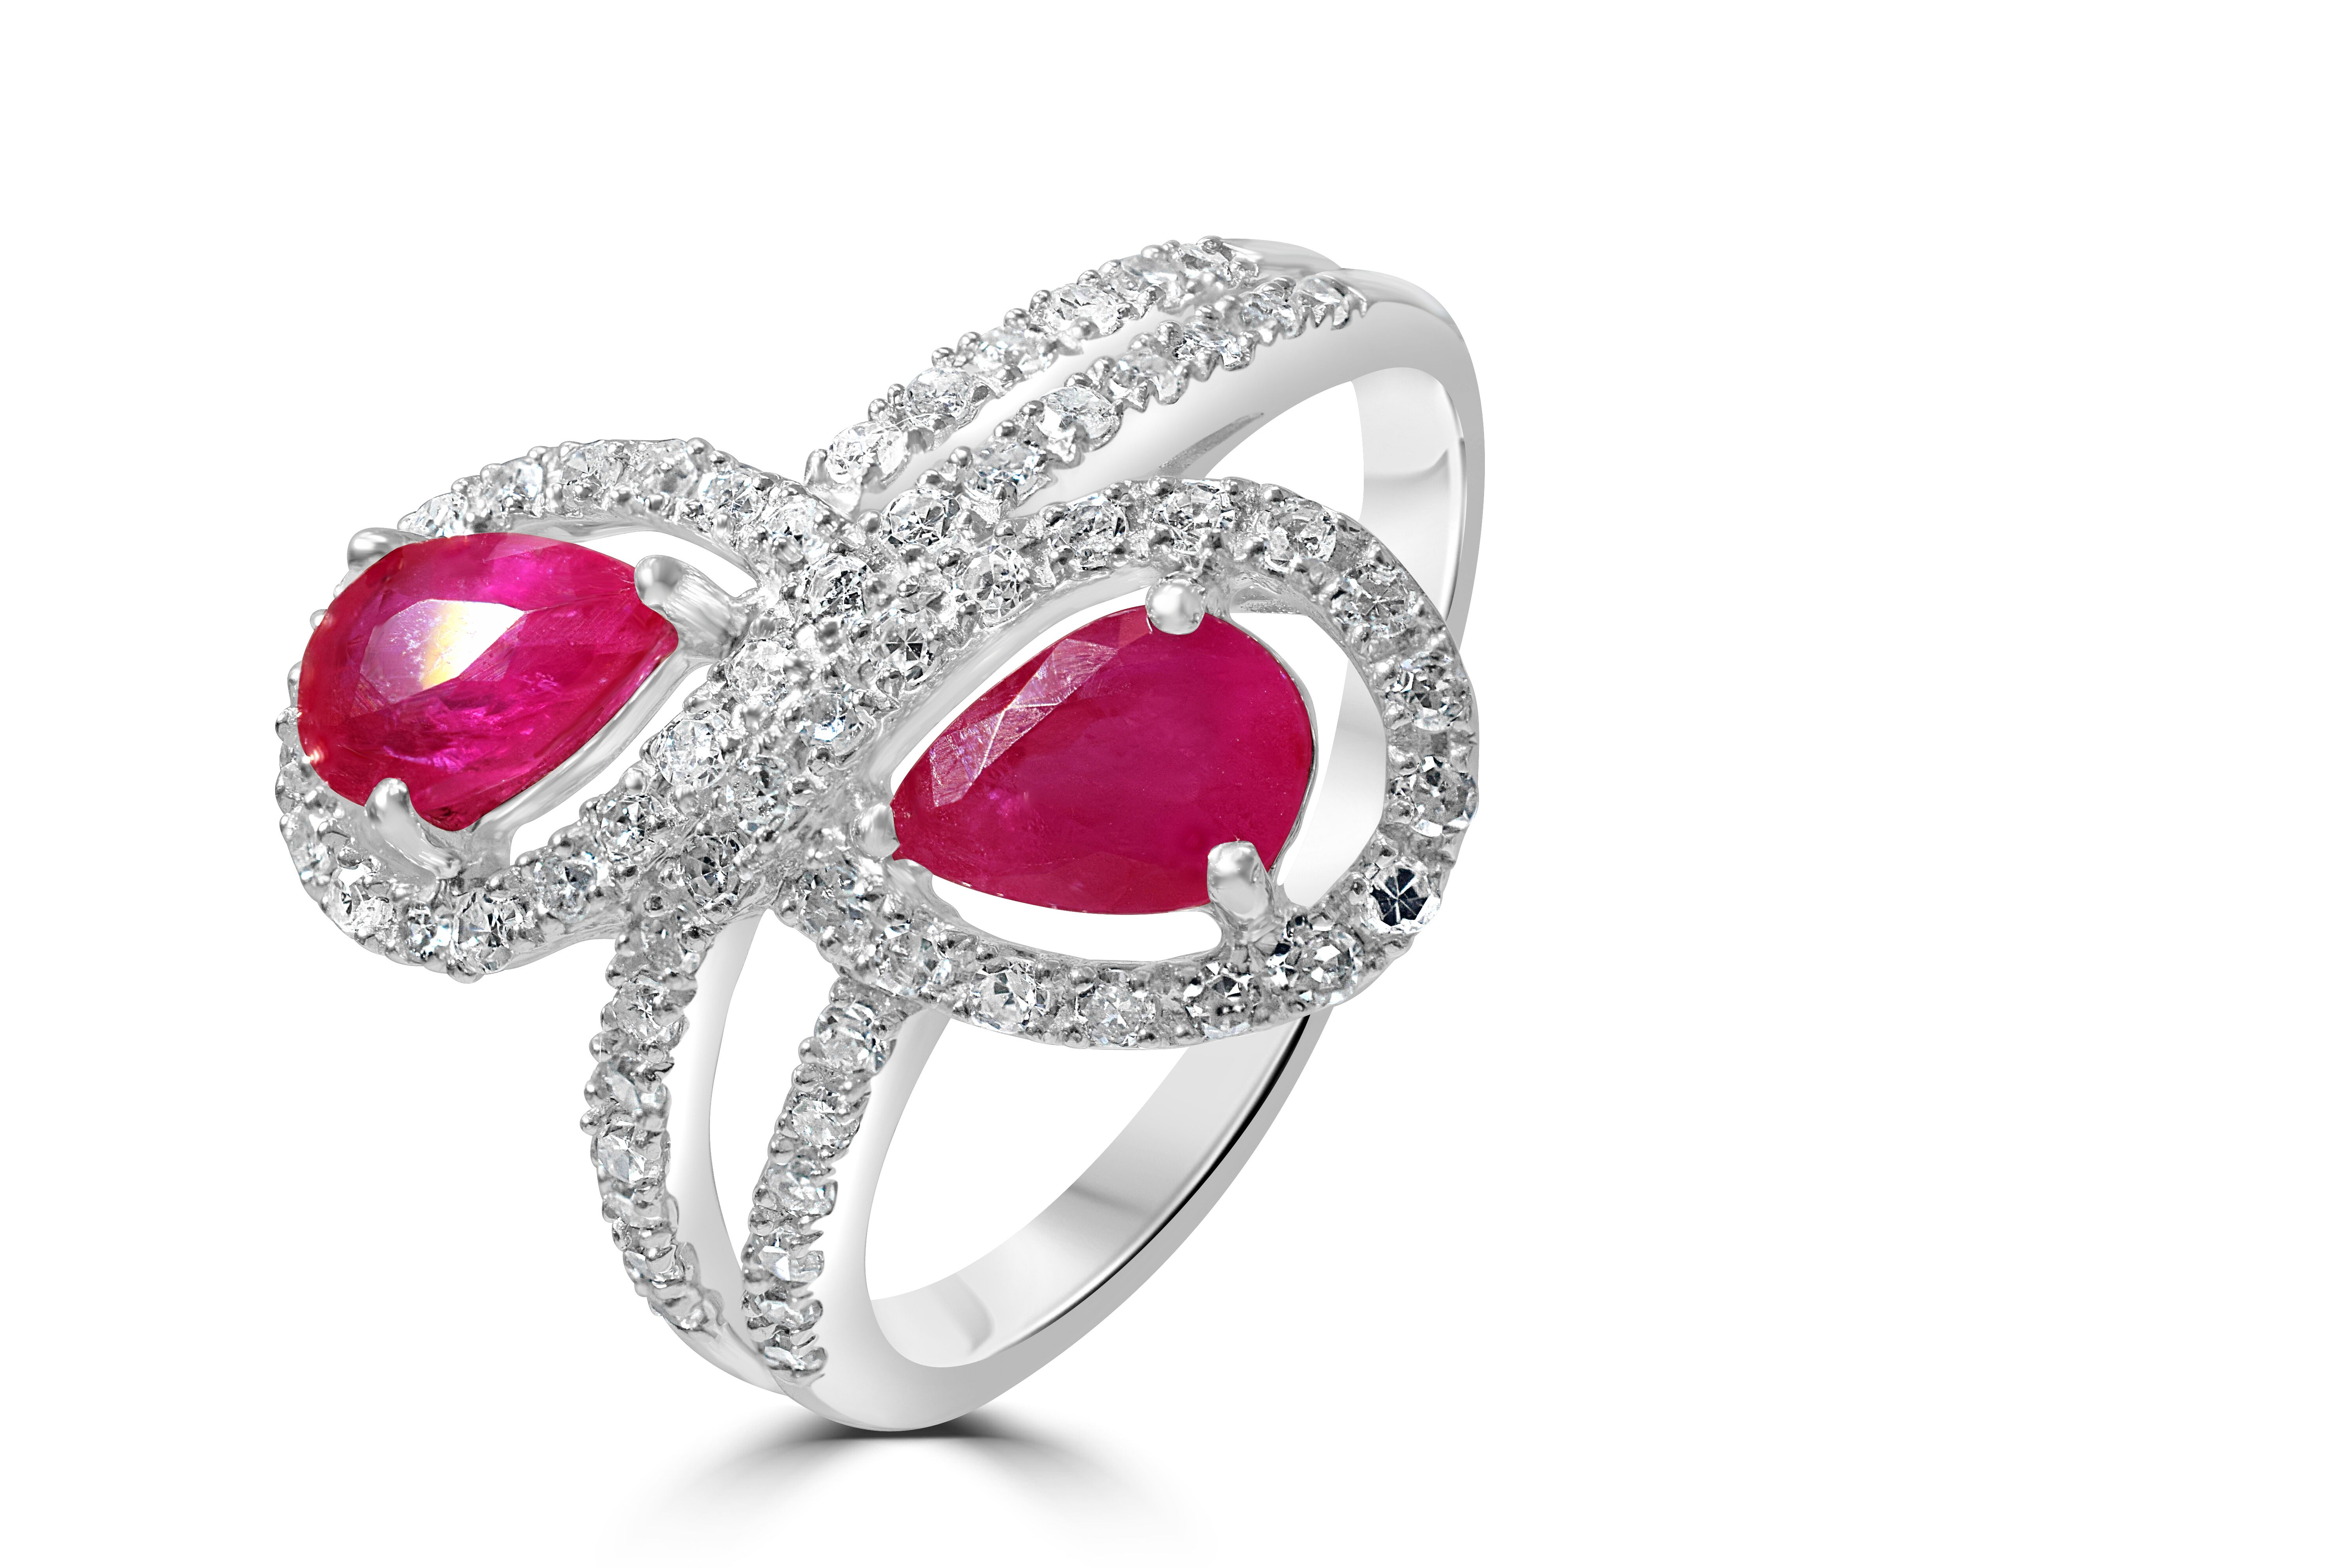 Two stone Ruby and Diamond 9ct White Gold Ring Size N RRP £2695